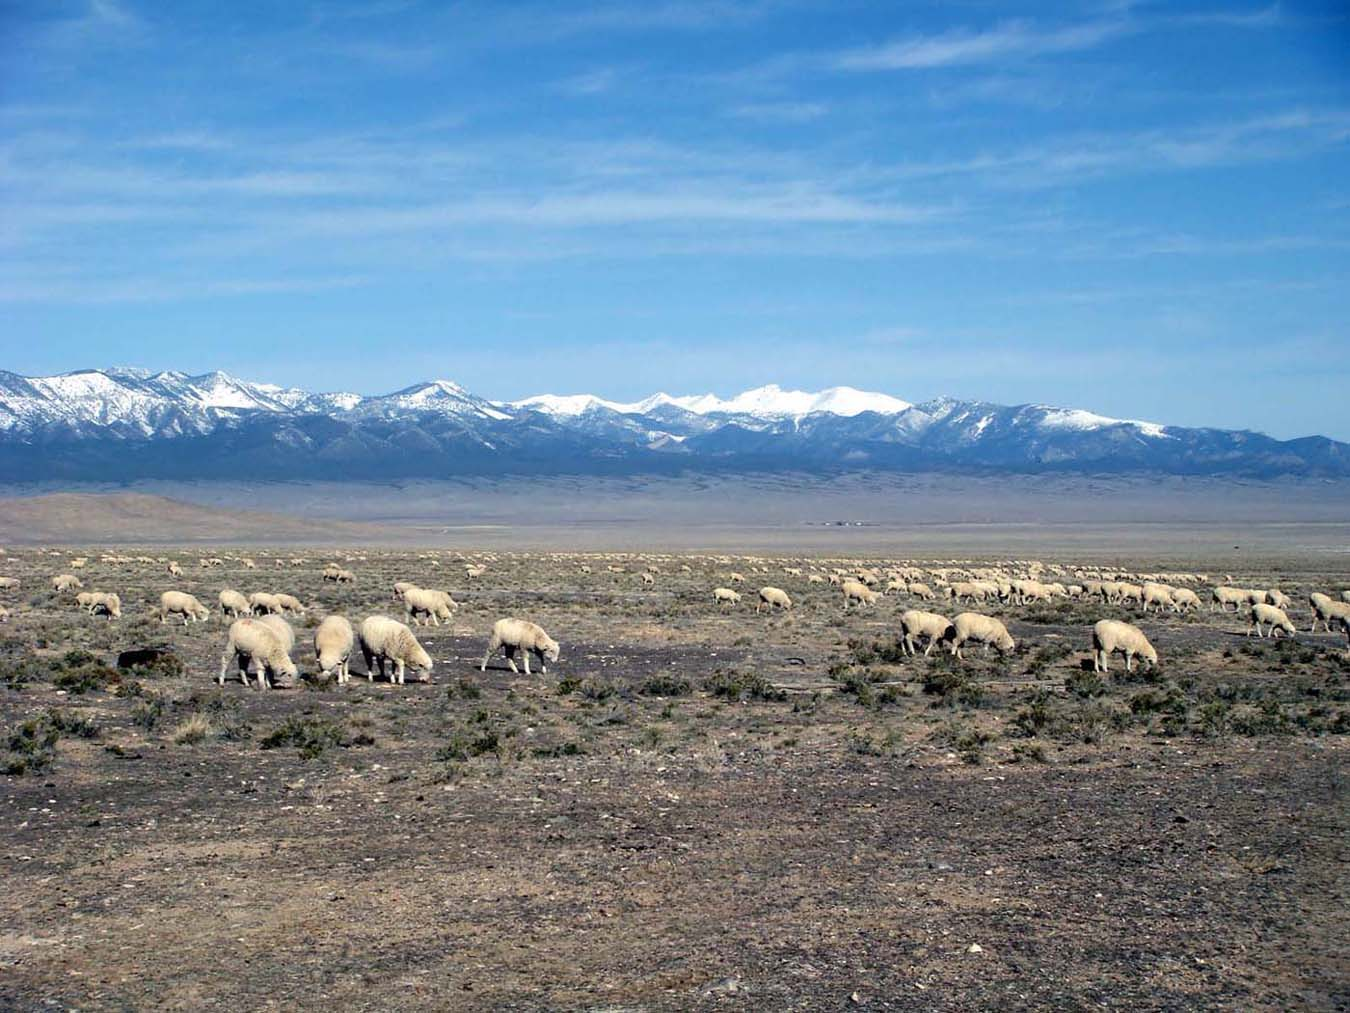 Sheep grazing in Snake Valley, Utah